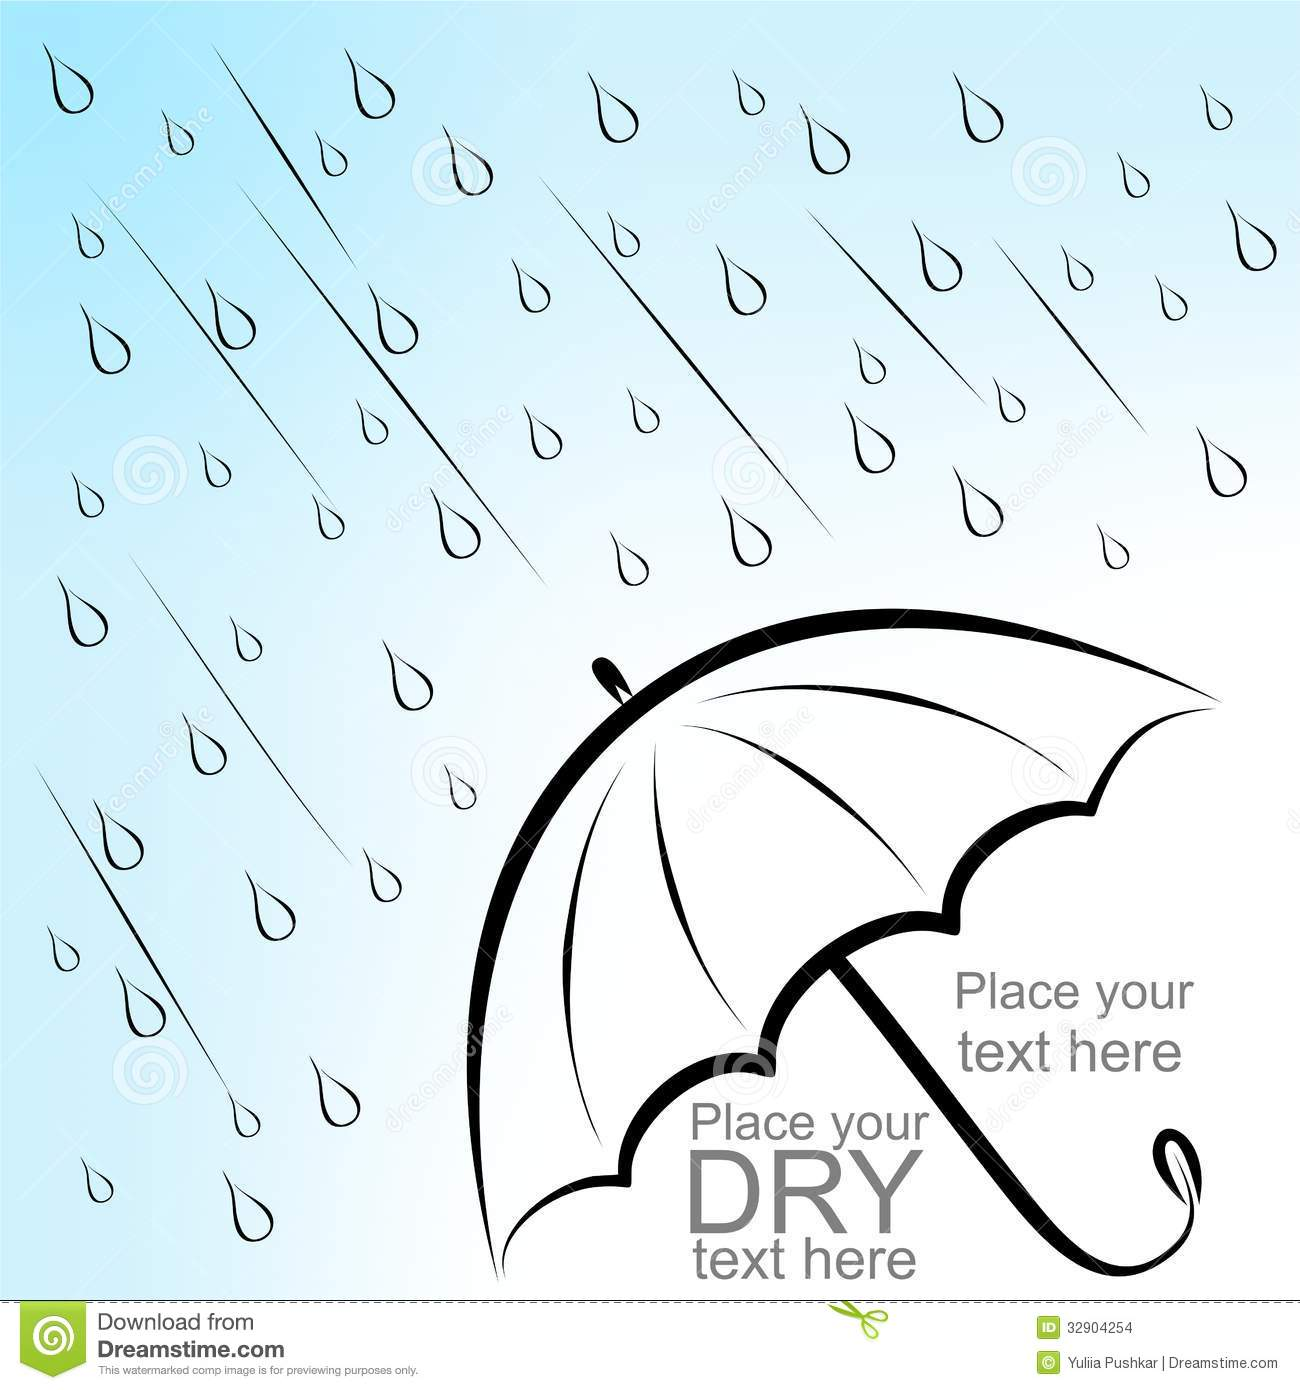 Dry text under umbrella stock vector  Illustration of curve